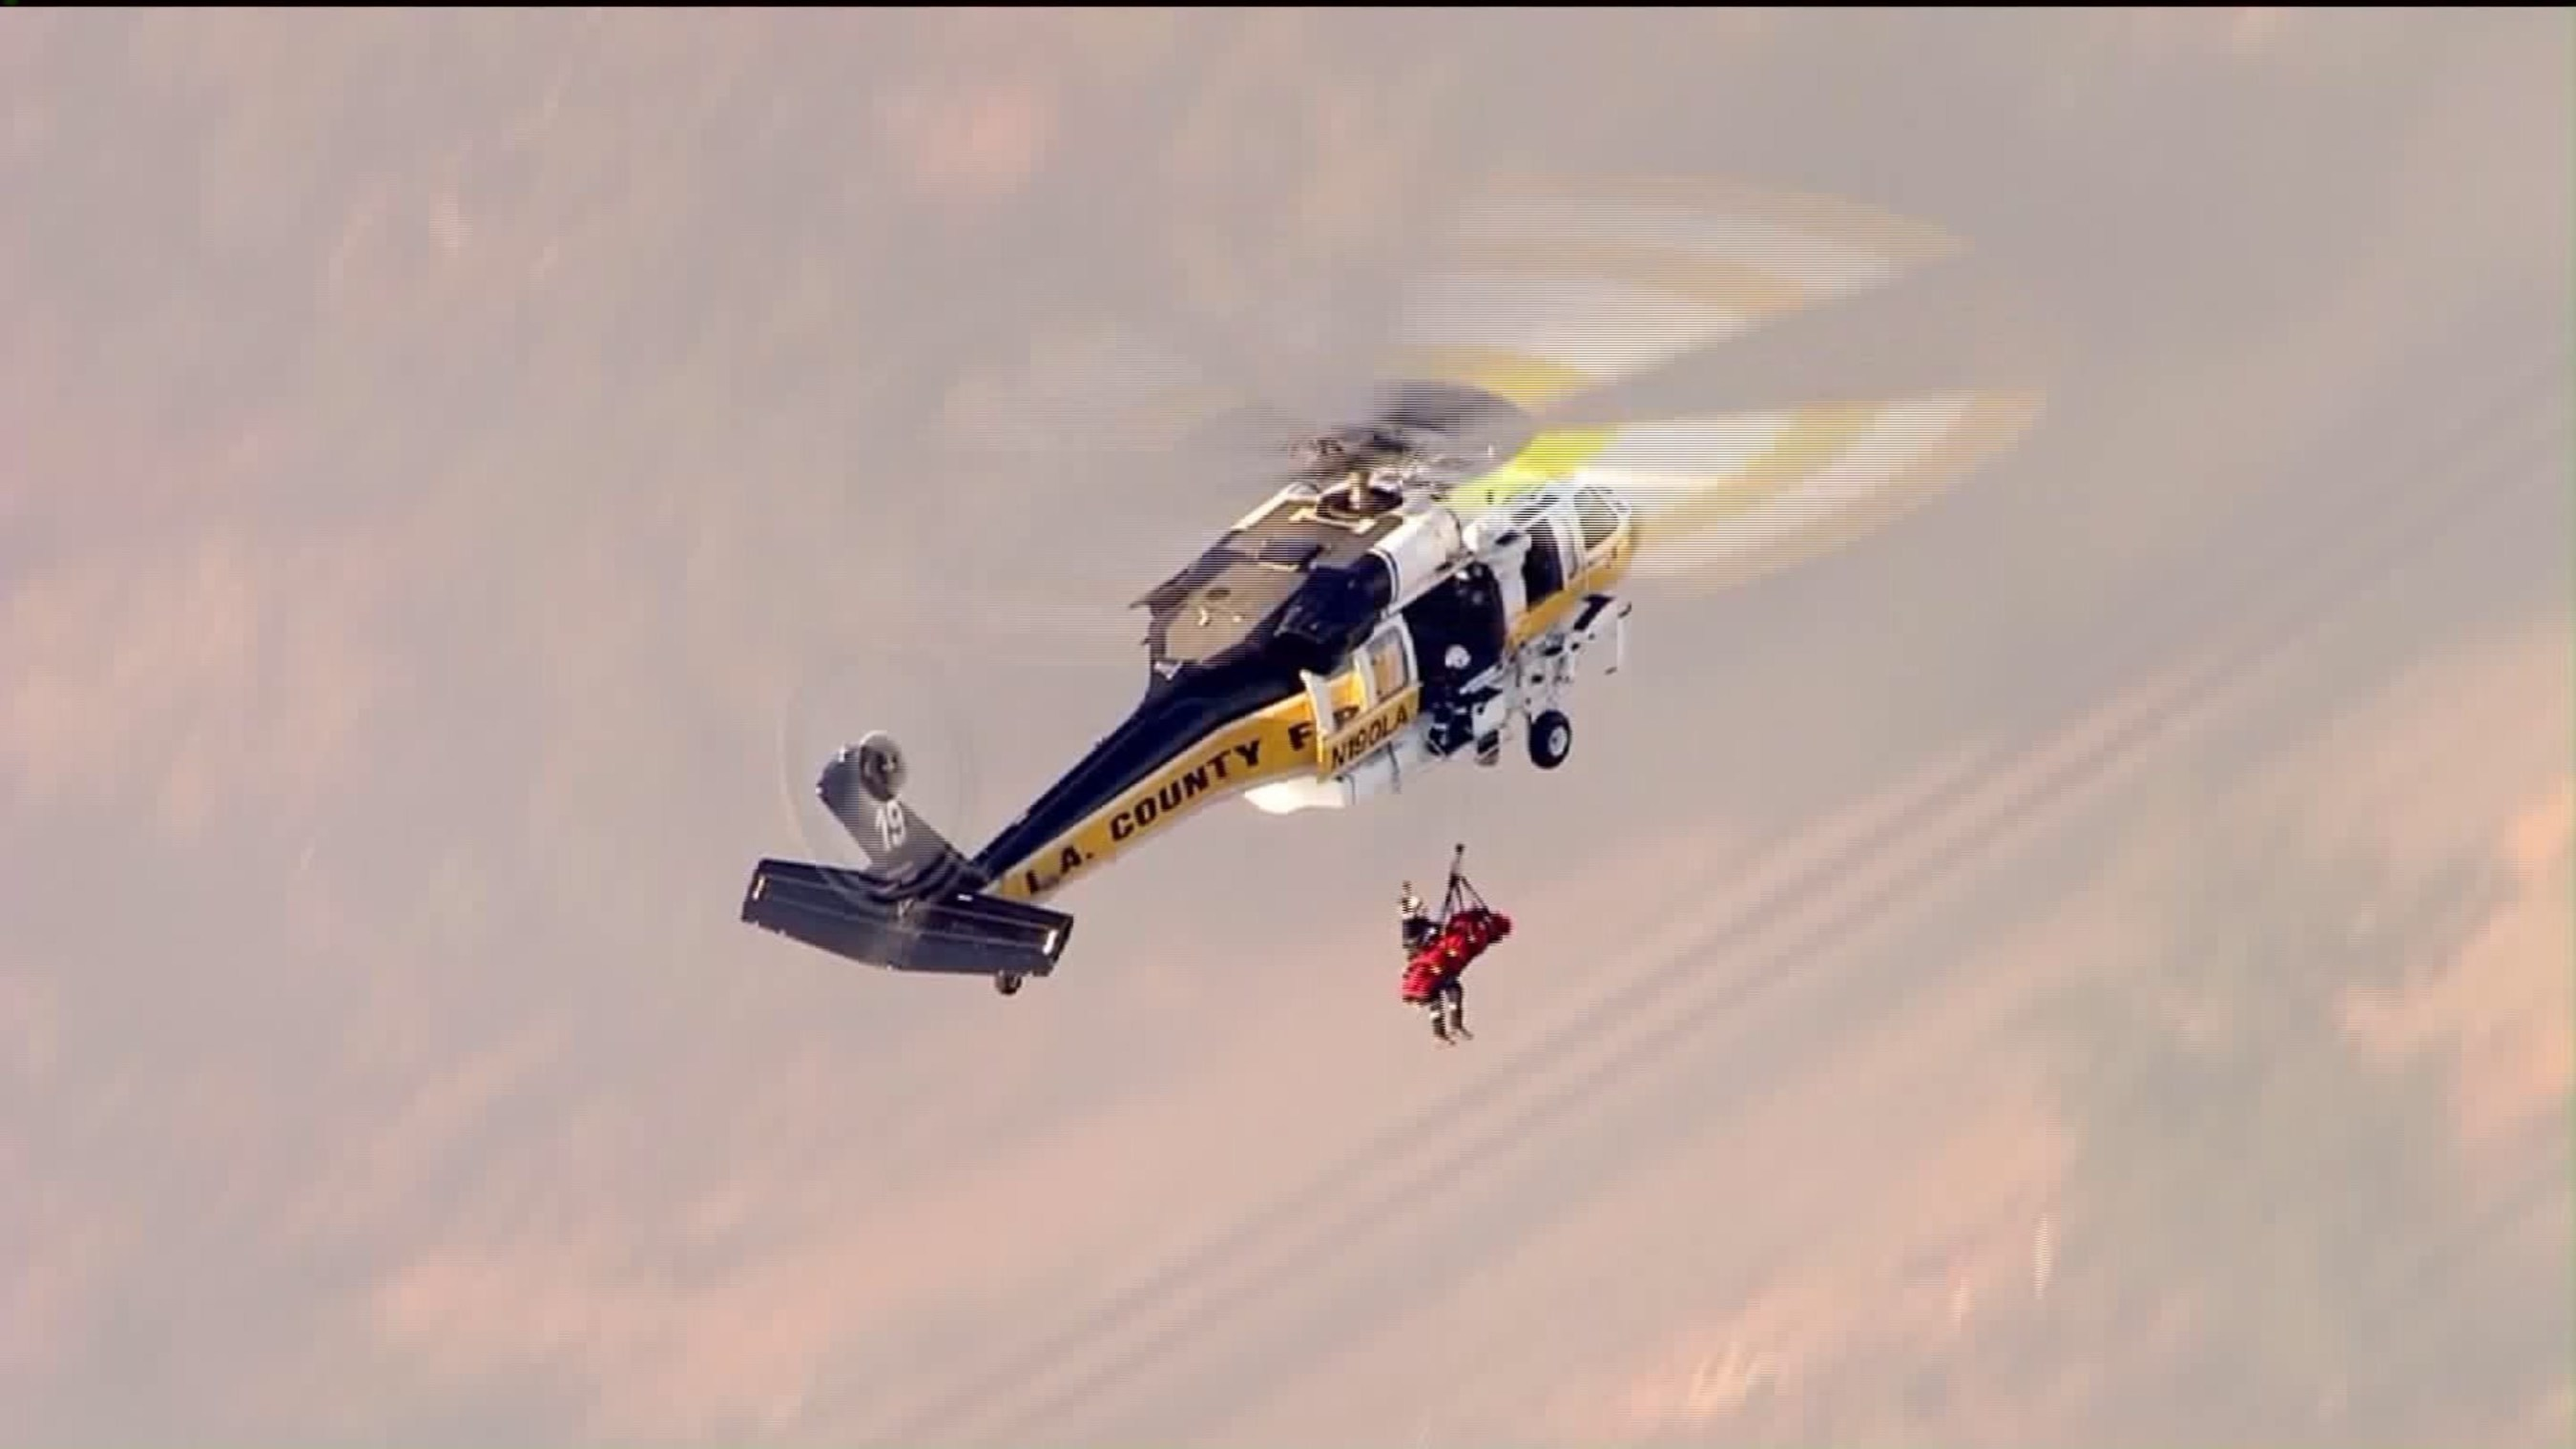 County of Los Angeles Fire Department Receives Sikorsky Rescue Award for Life-Saving Mission